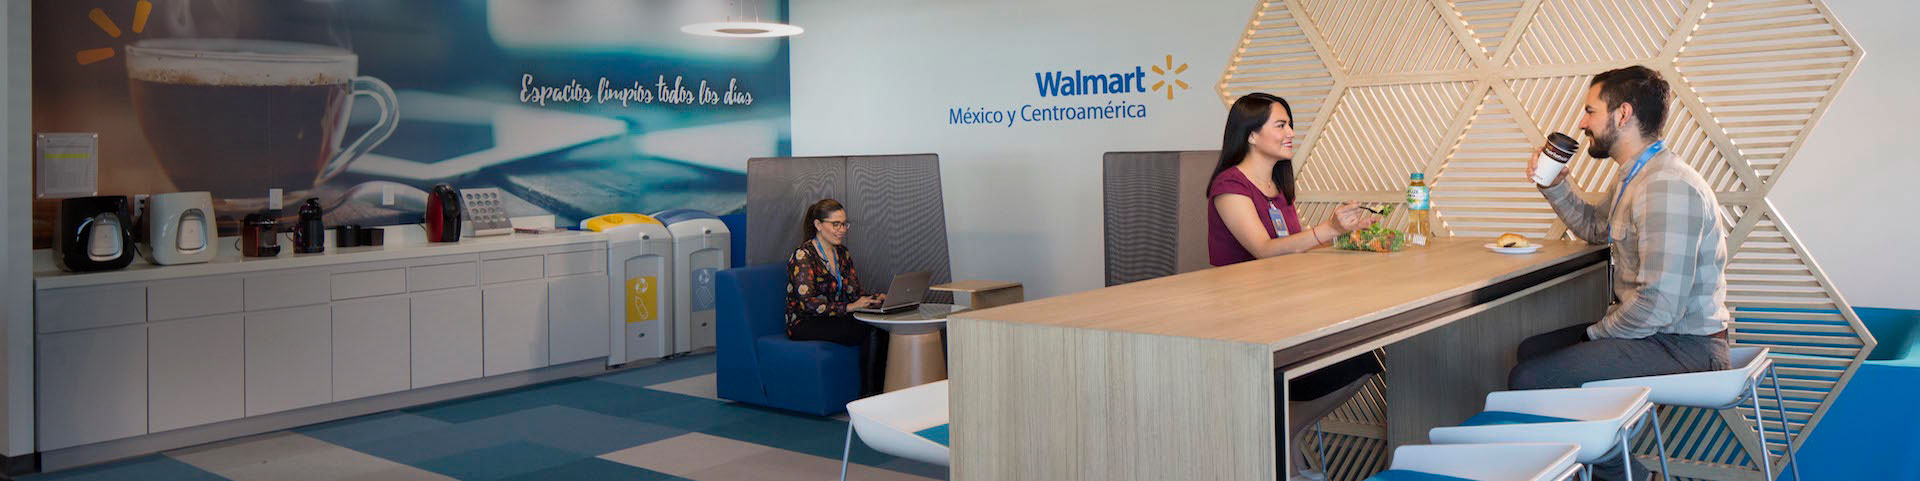 Walmart de México y Centroamérica will report its Second Quarter 2019 results